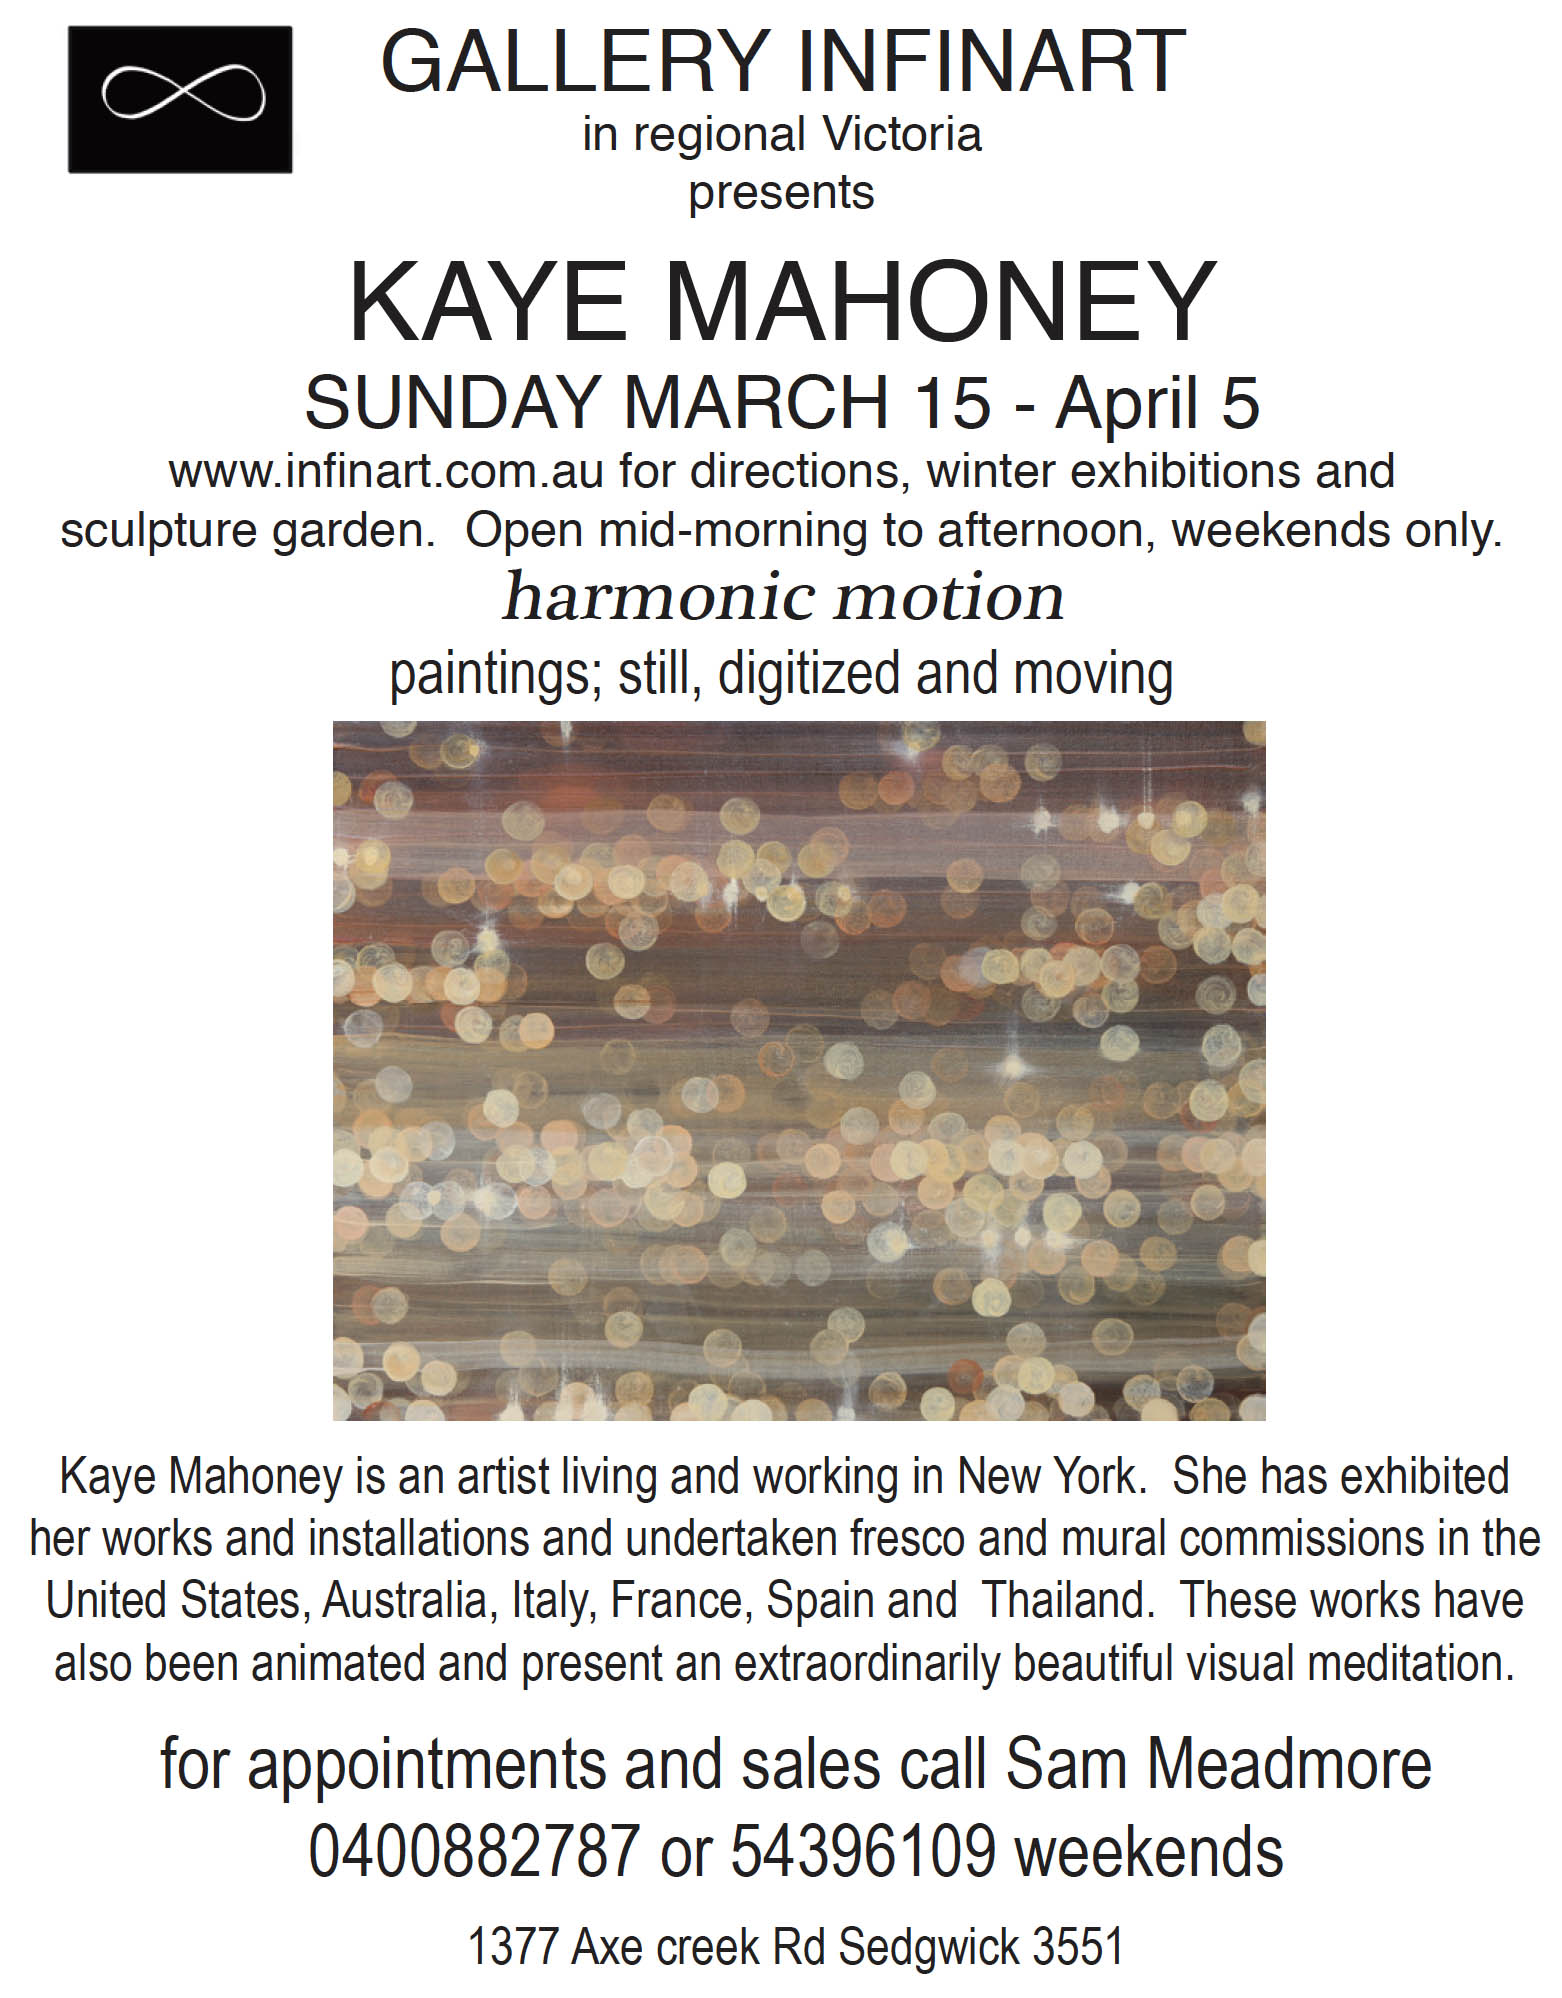 kaye mahoney exhibit invite.jpg